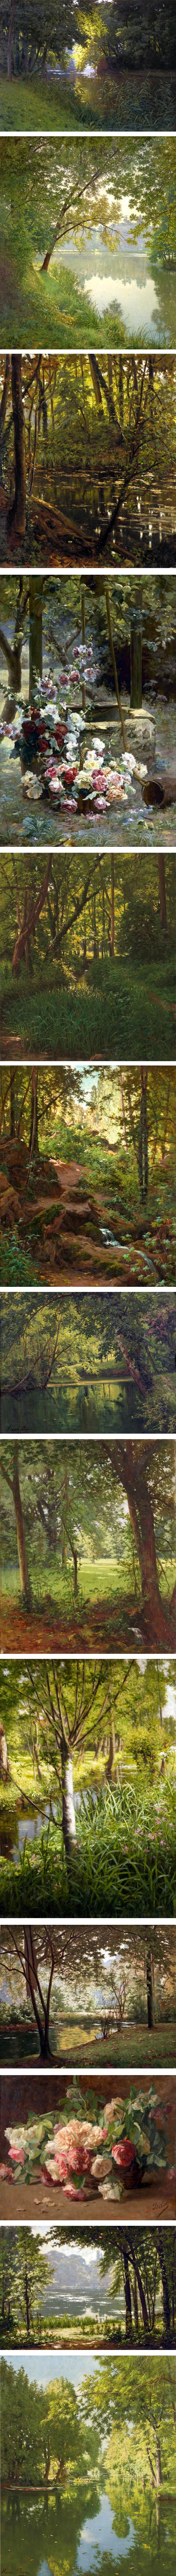 Henri Biva, 19th century french lanscapes and florals